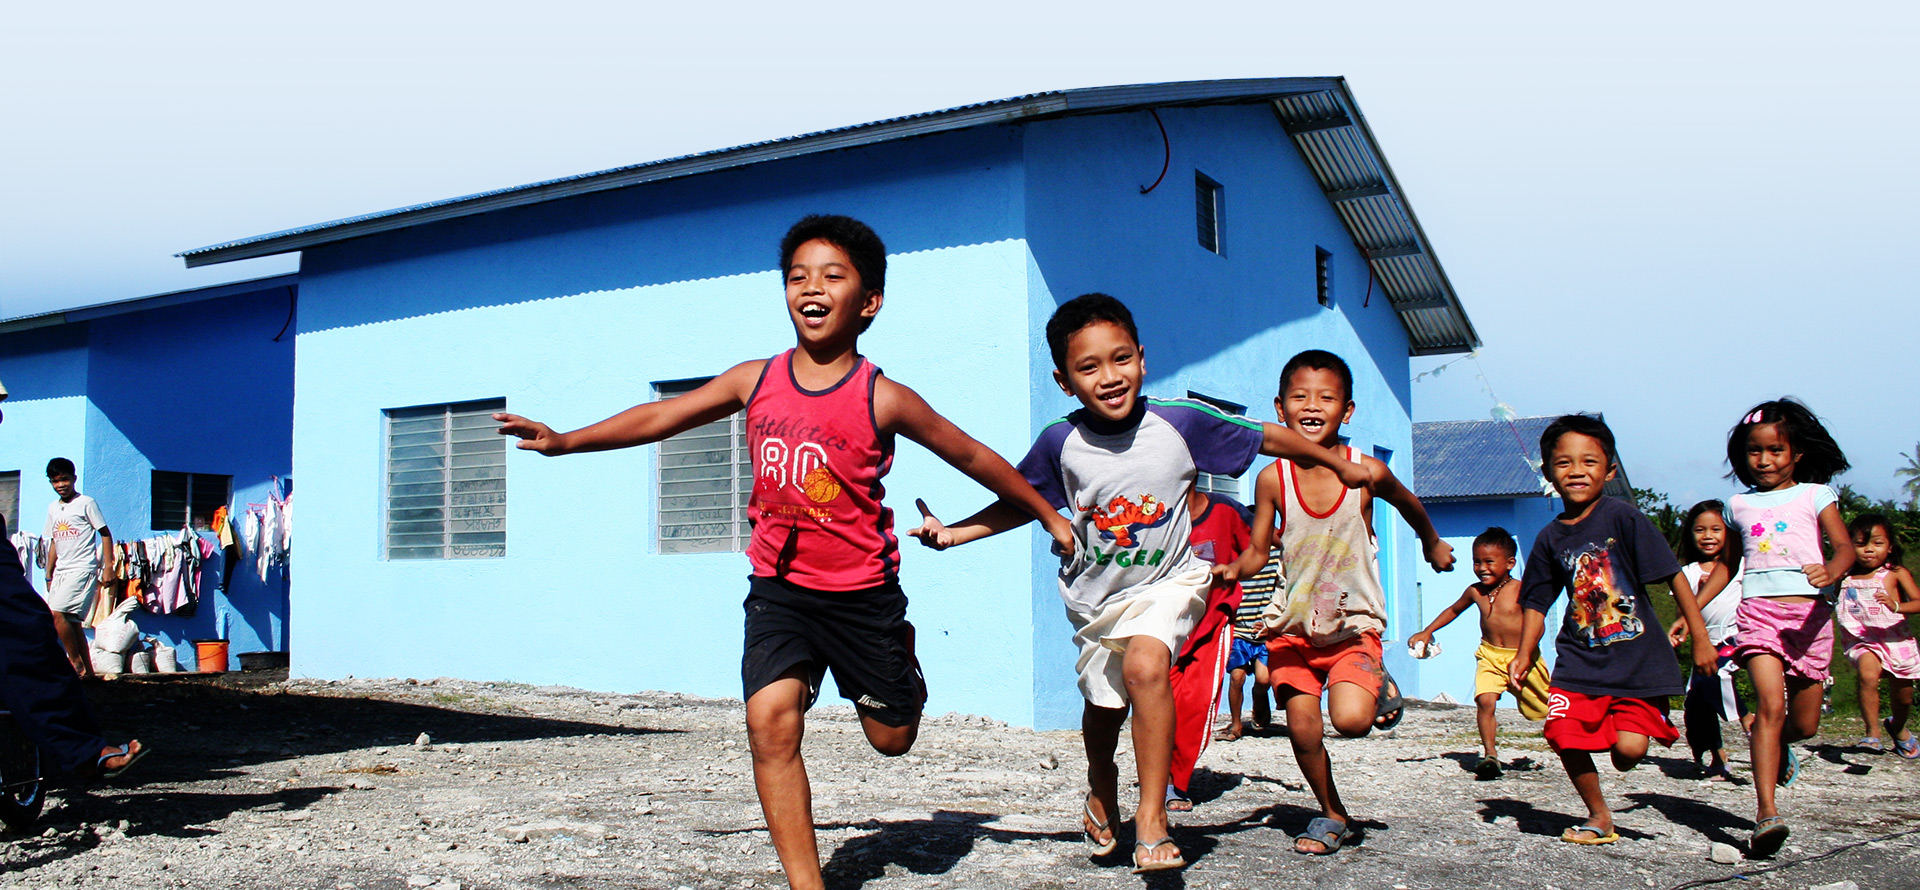 Children running and smiling